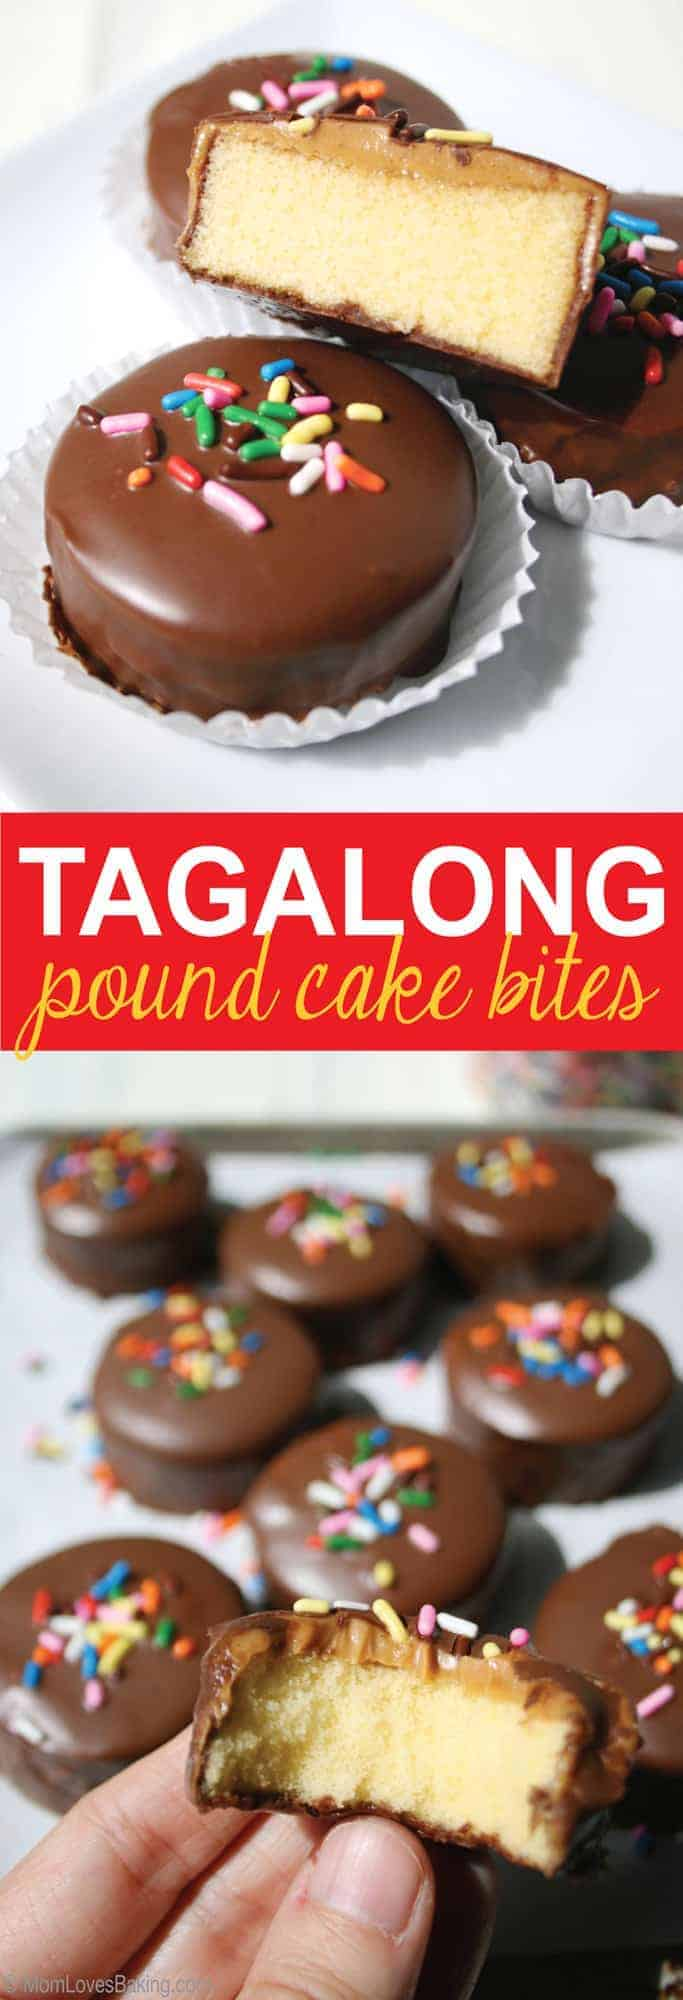 Tagalong-Pound-Cake-Bites-Long